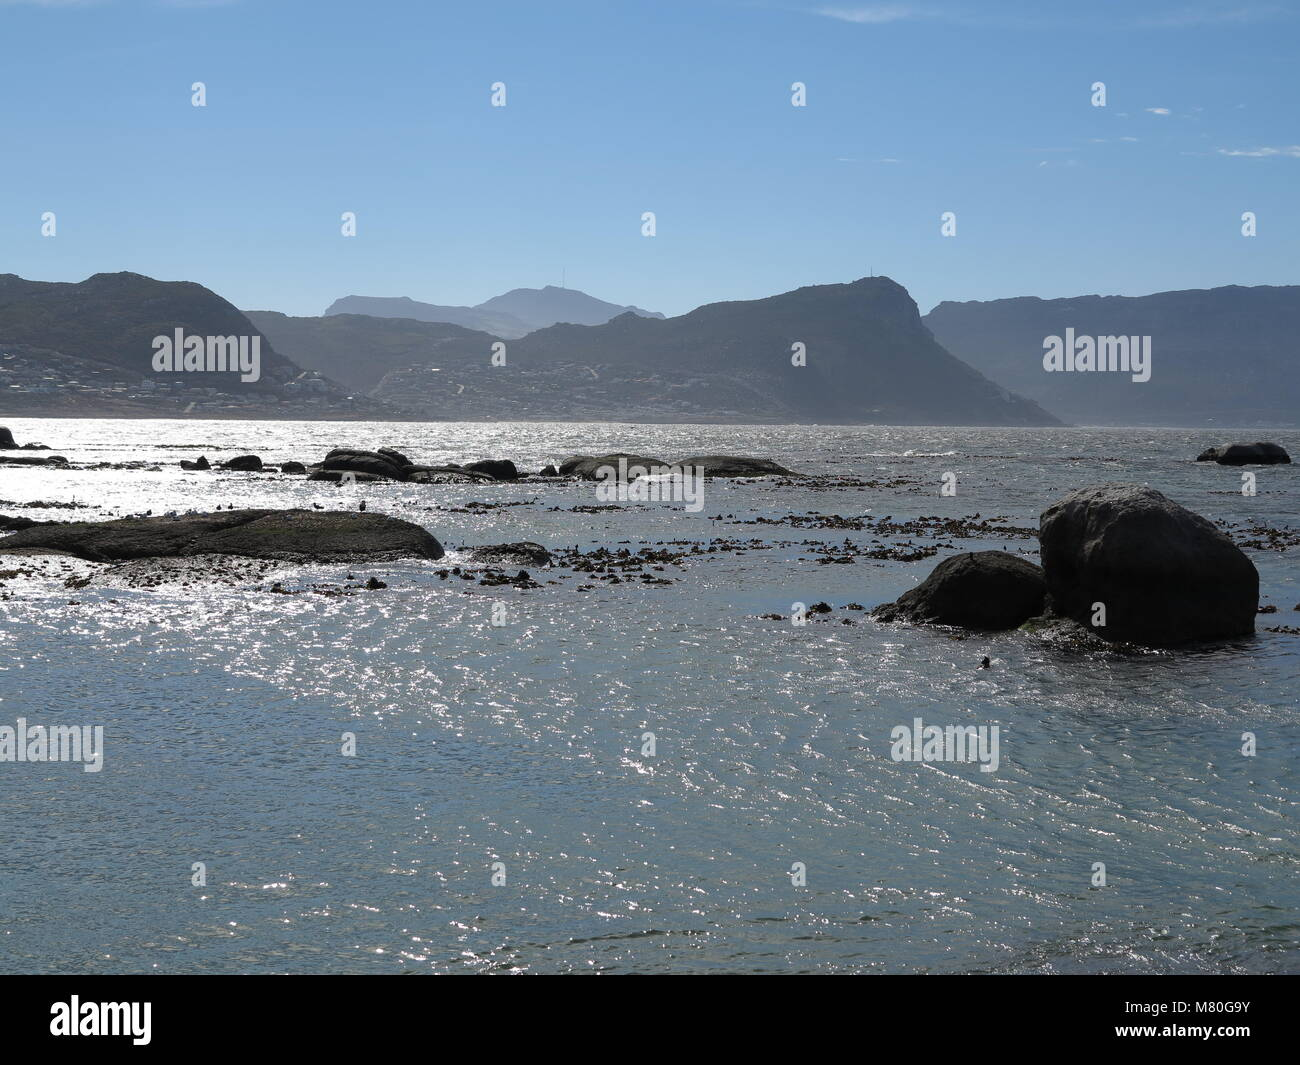 impressing costal landscape with sculptural rocks and blue water near Cape Town, South Africa - Stock Image